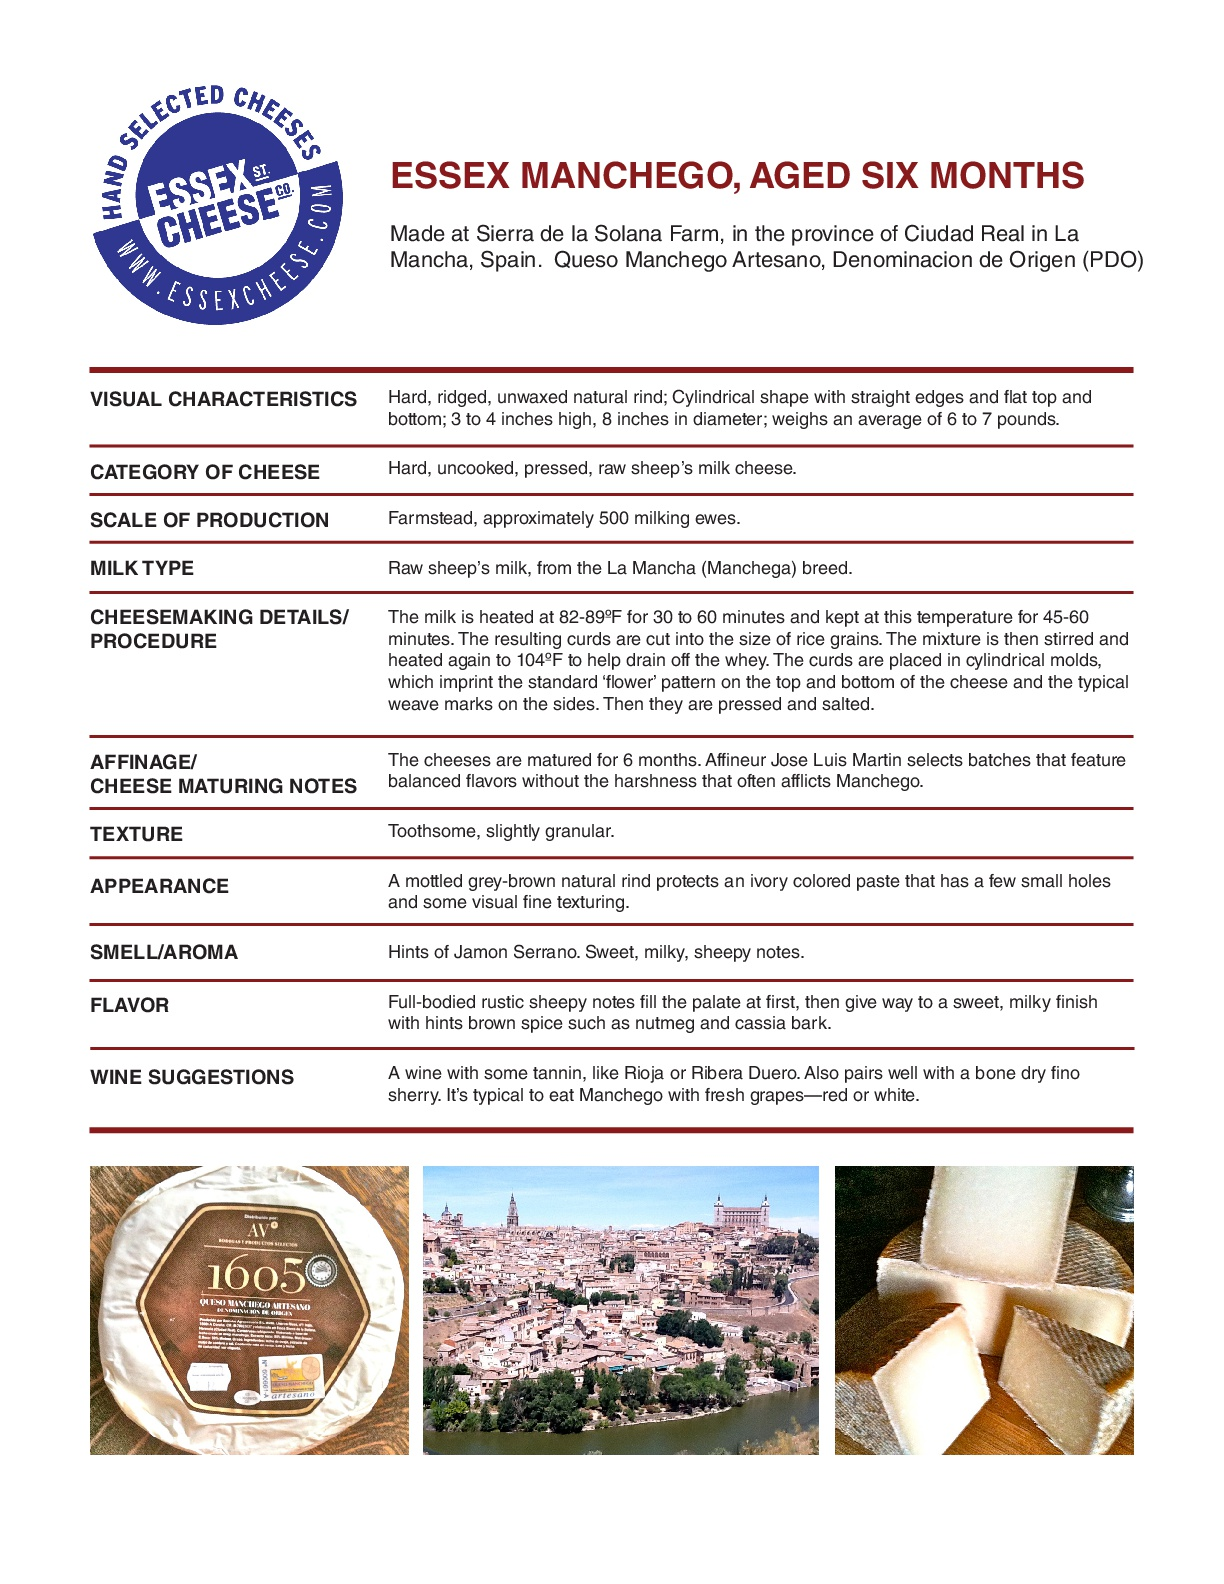 Essex Manchego Specifications - Our raw milk, unwaxed, farmhouse Manchego specs. 8.5 x 11 inch PDF to download and print for training and reference.